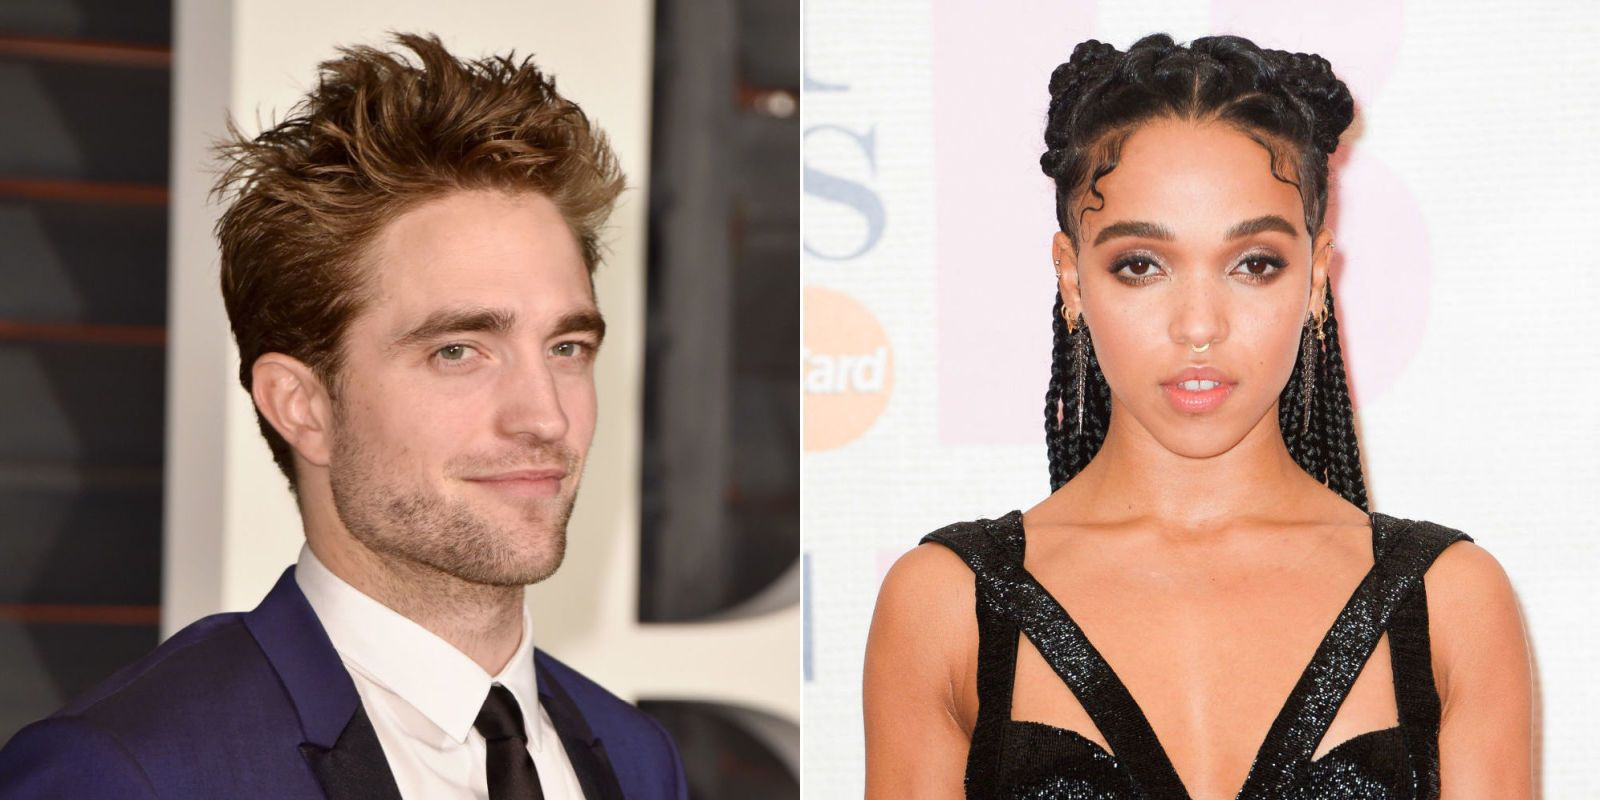 Robert Pattinson Gave FKA Twigs an Actual Engagement Ring This Time, Not Just a Promise One